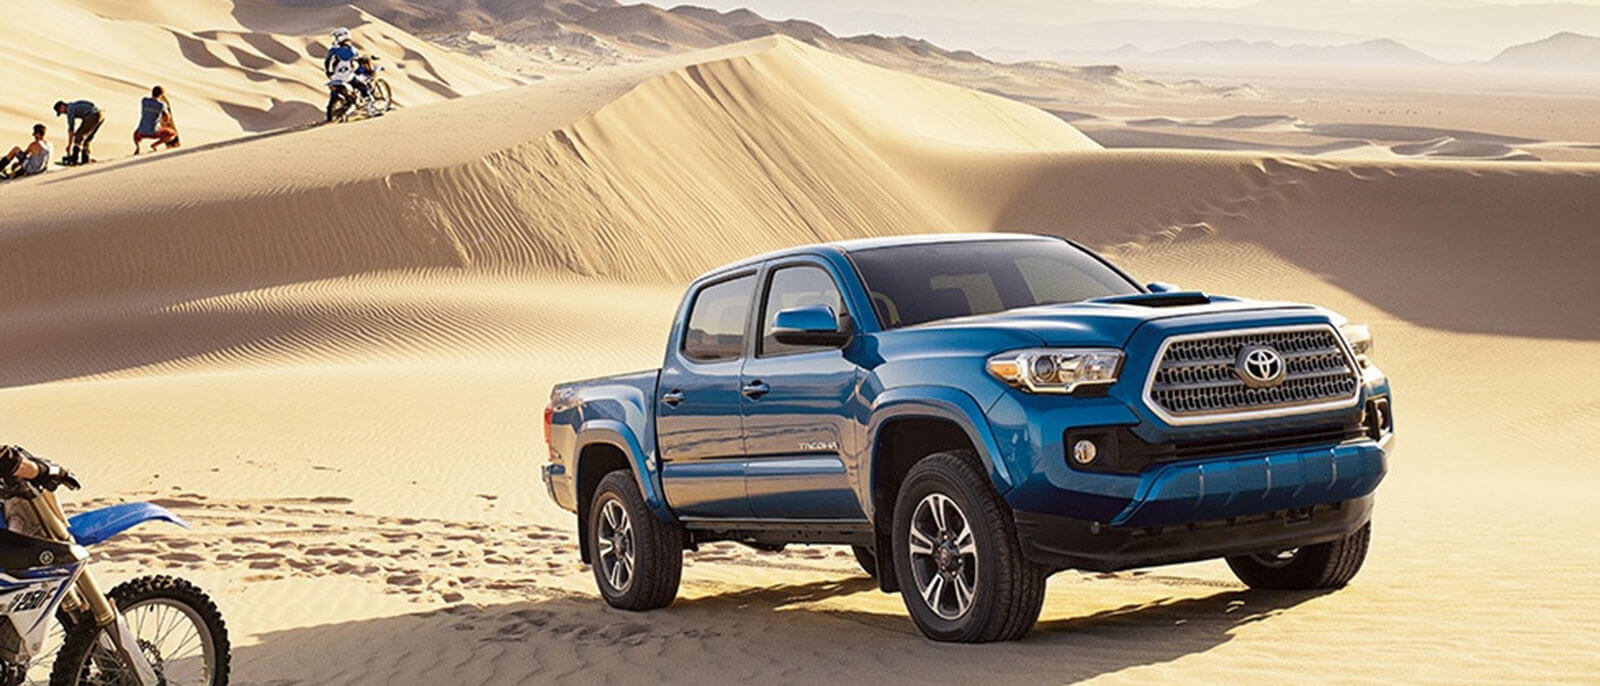 2017 Toyota Tacoma in the desert